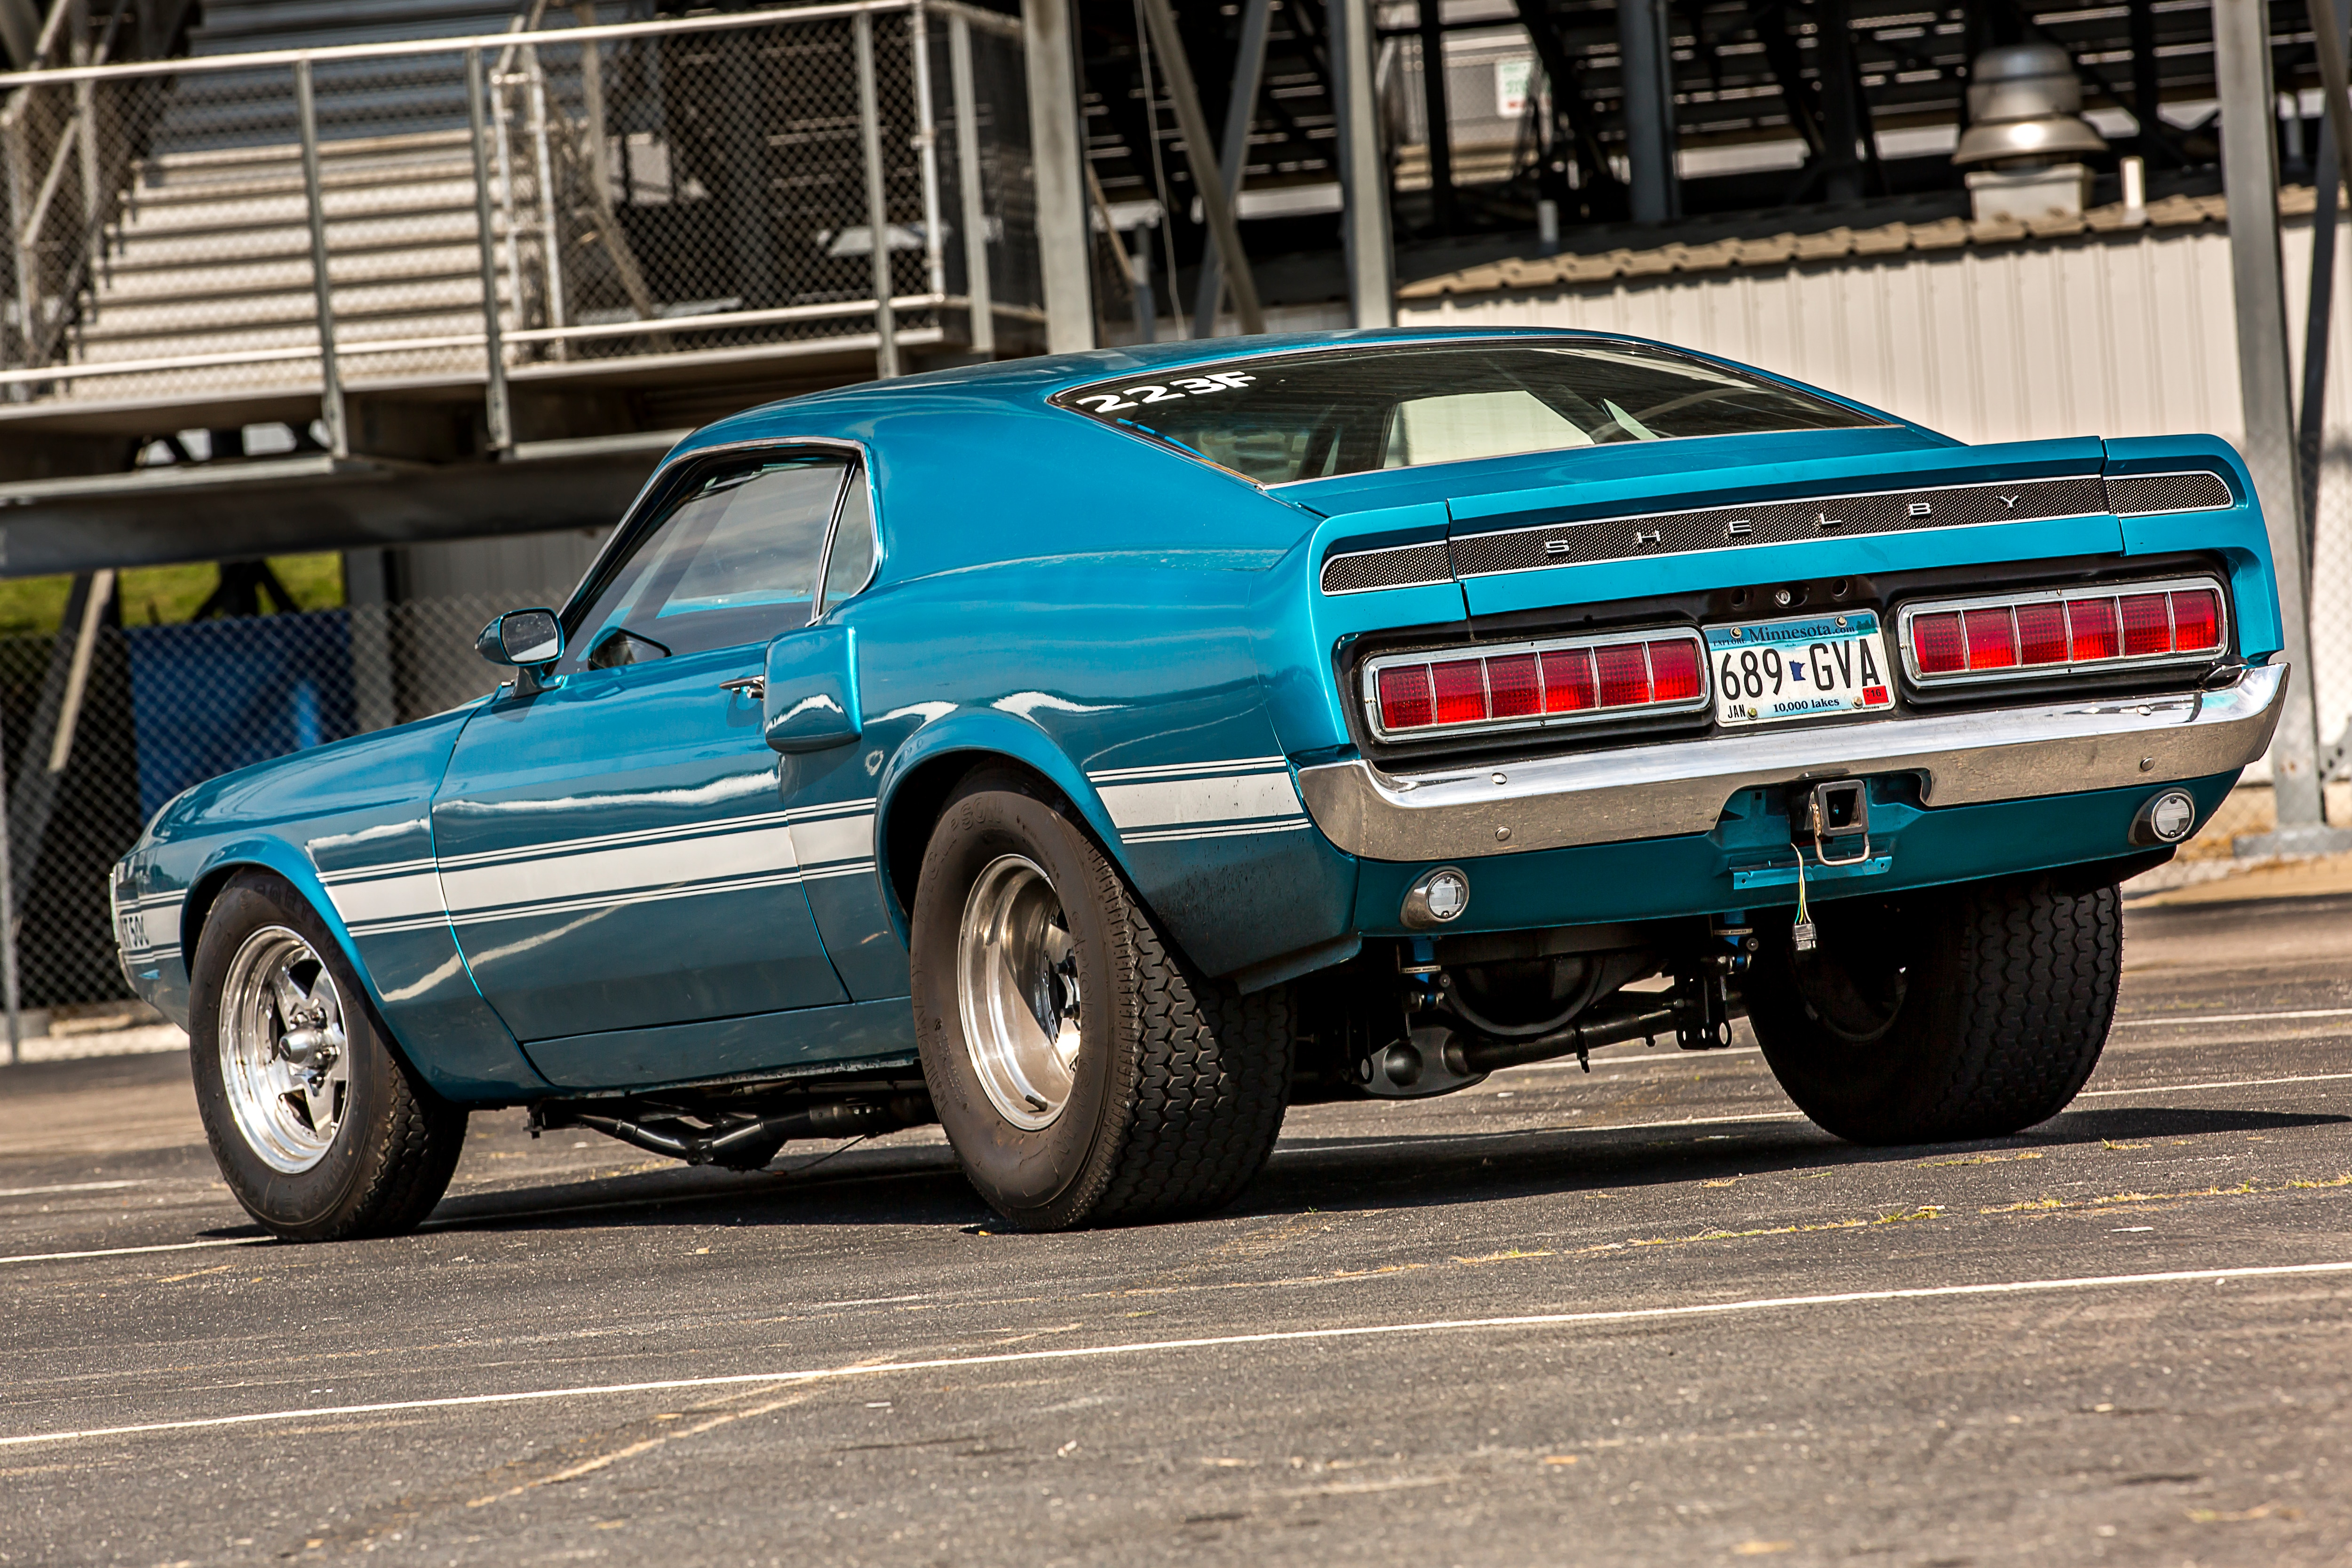 16 1969 Ford Mustang Rear View